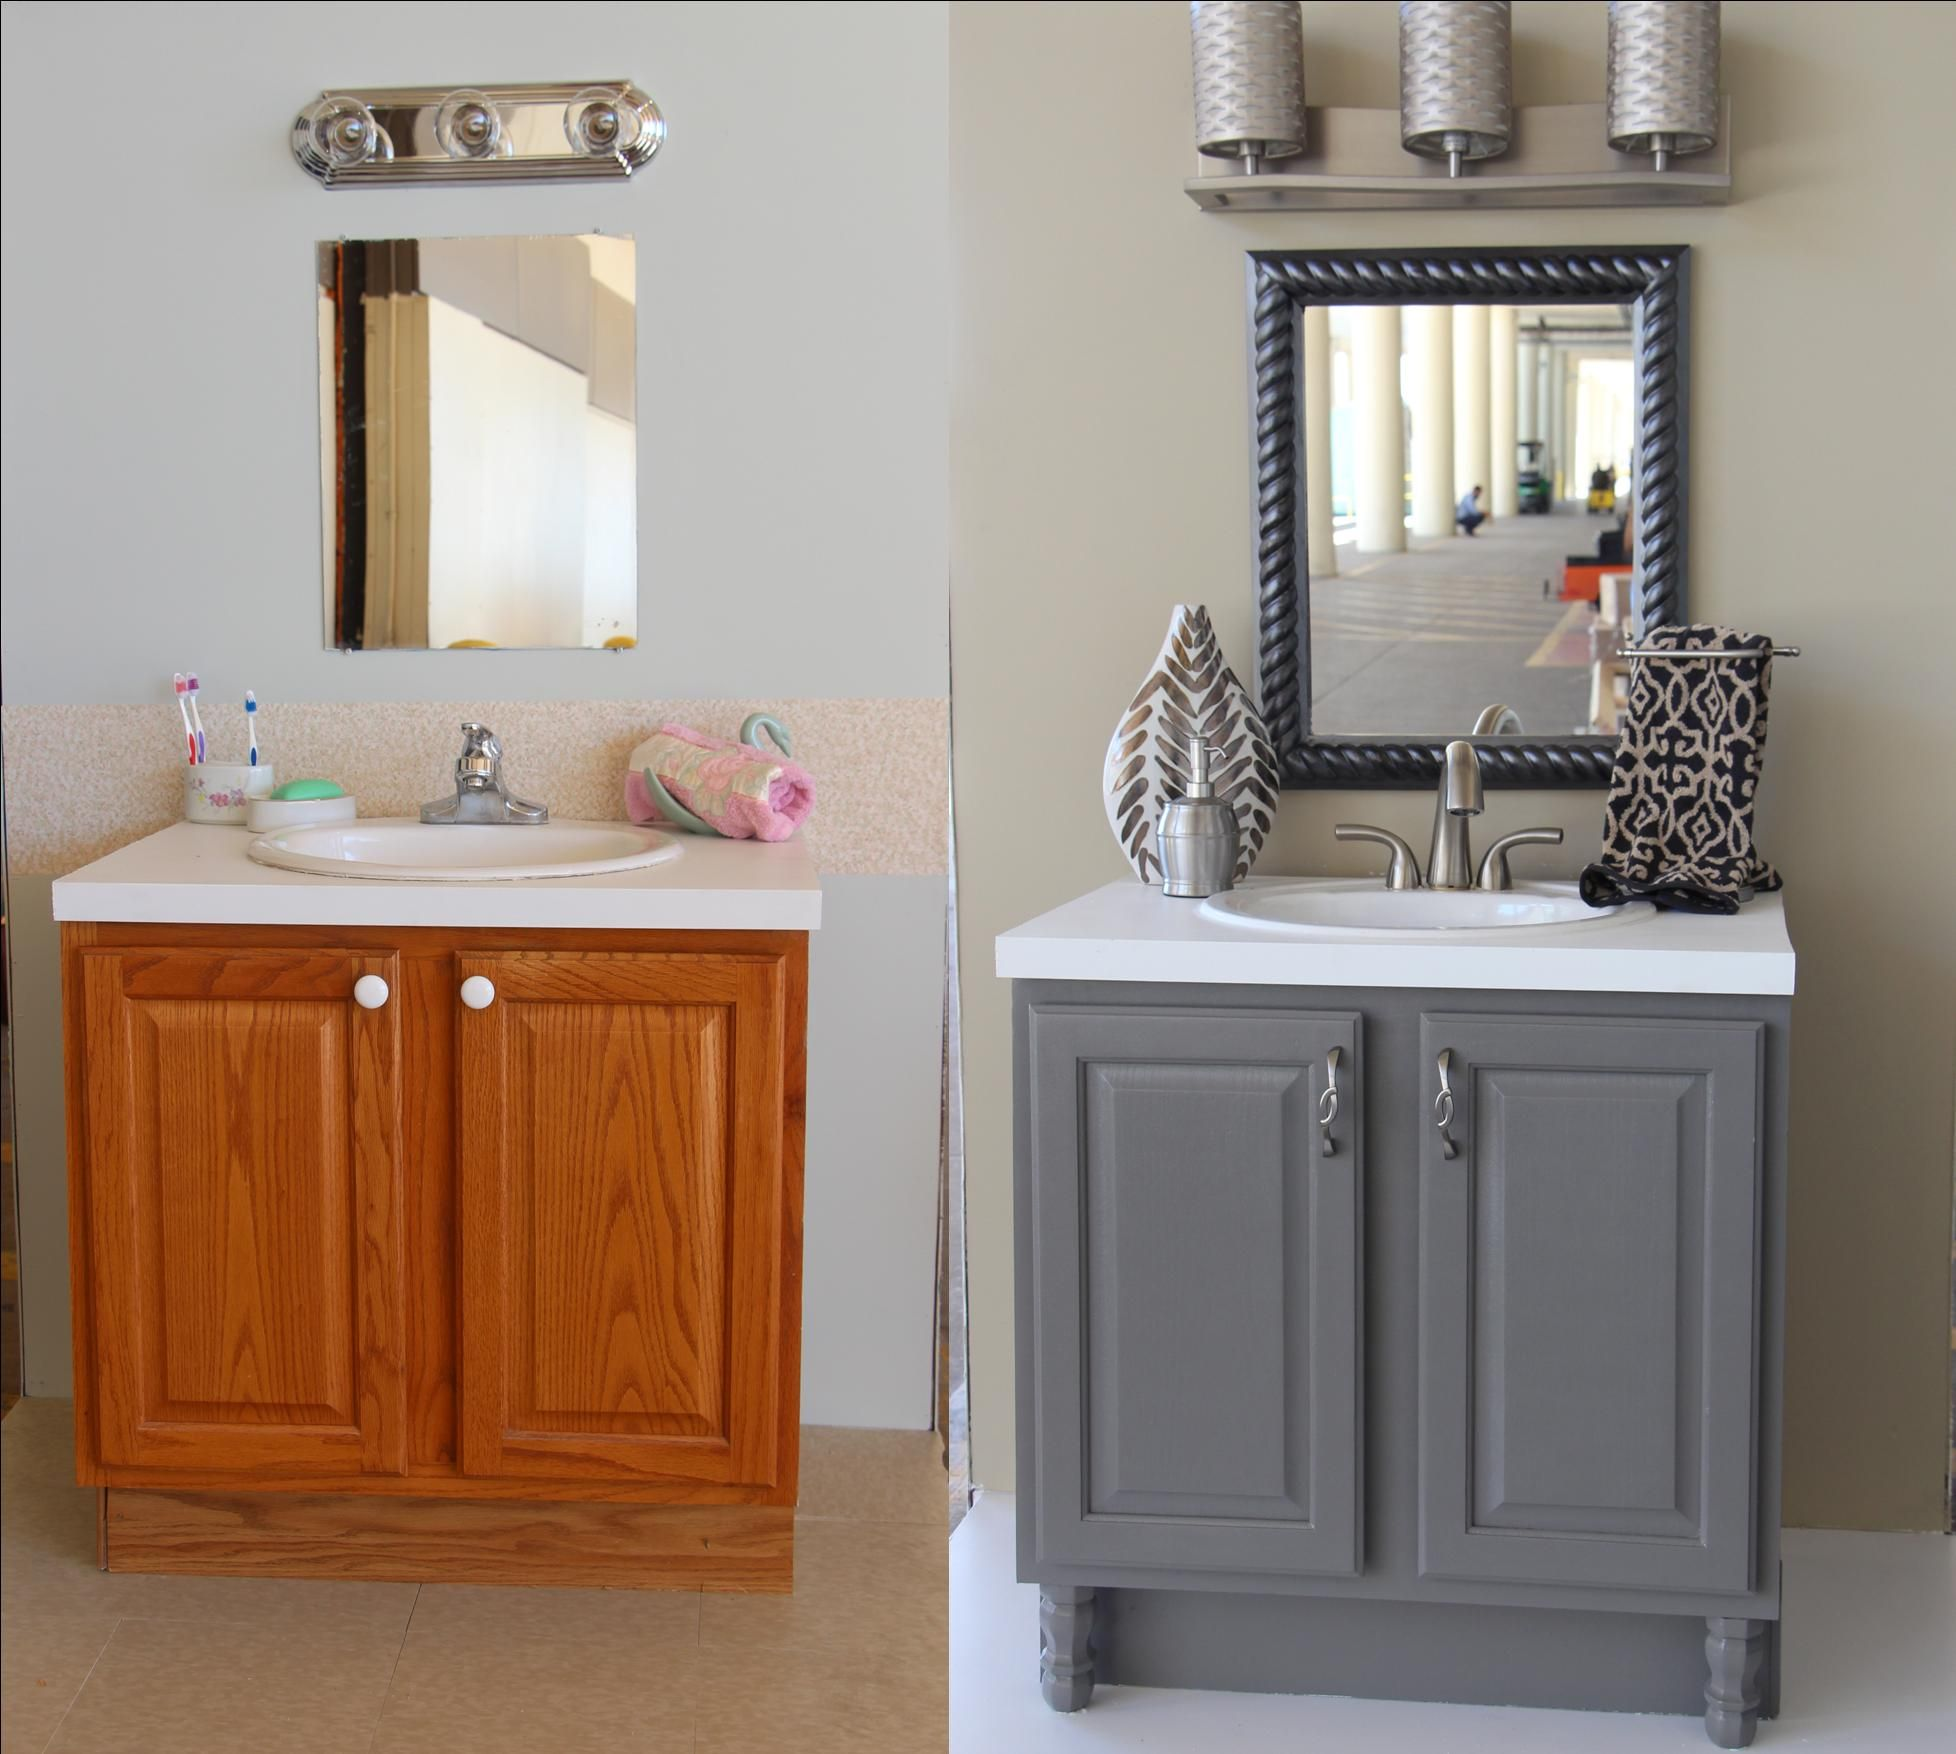 Bathroom Updates You Can Do This Weekend Bathroom Makeover Small Bathroom Remodel Bathroom Decor